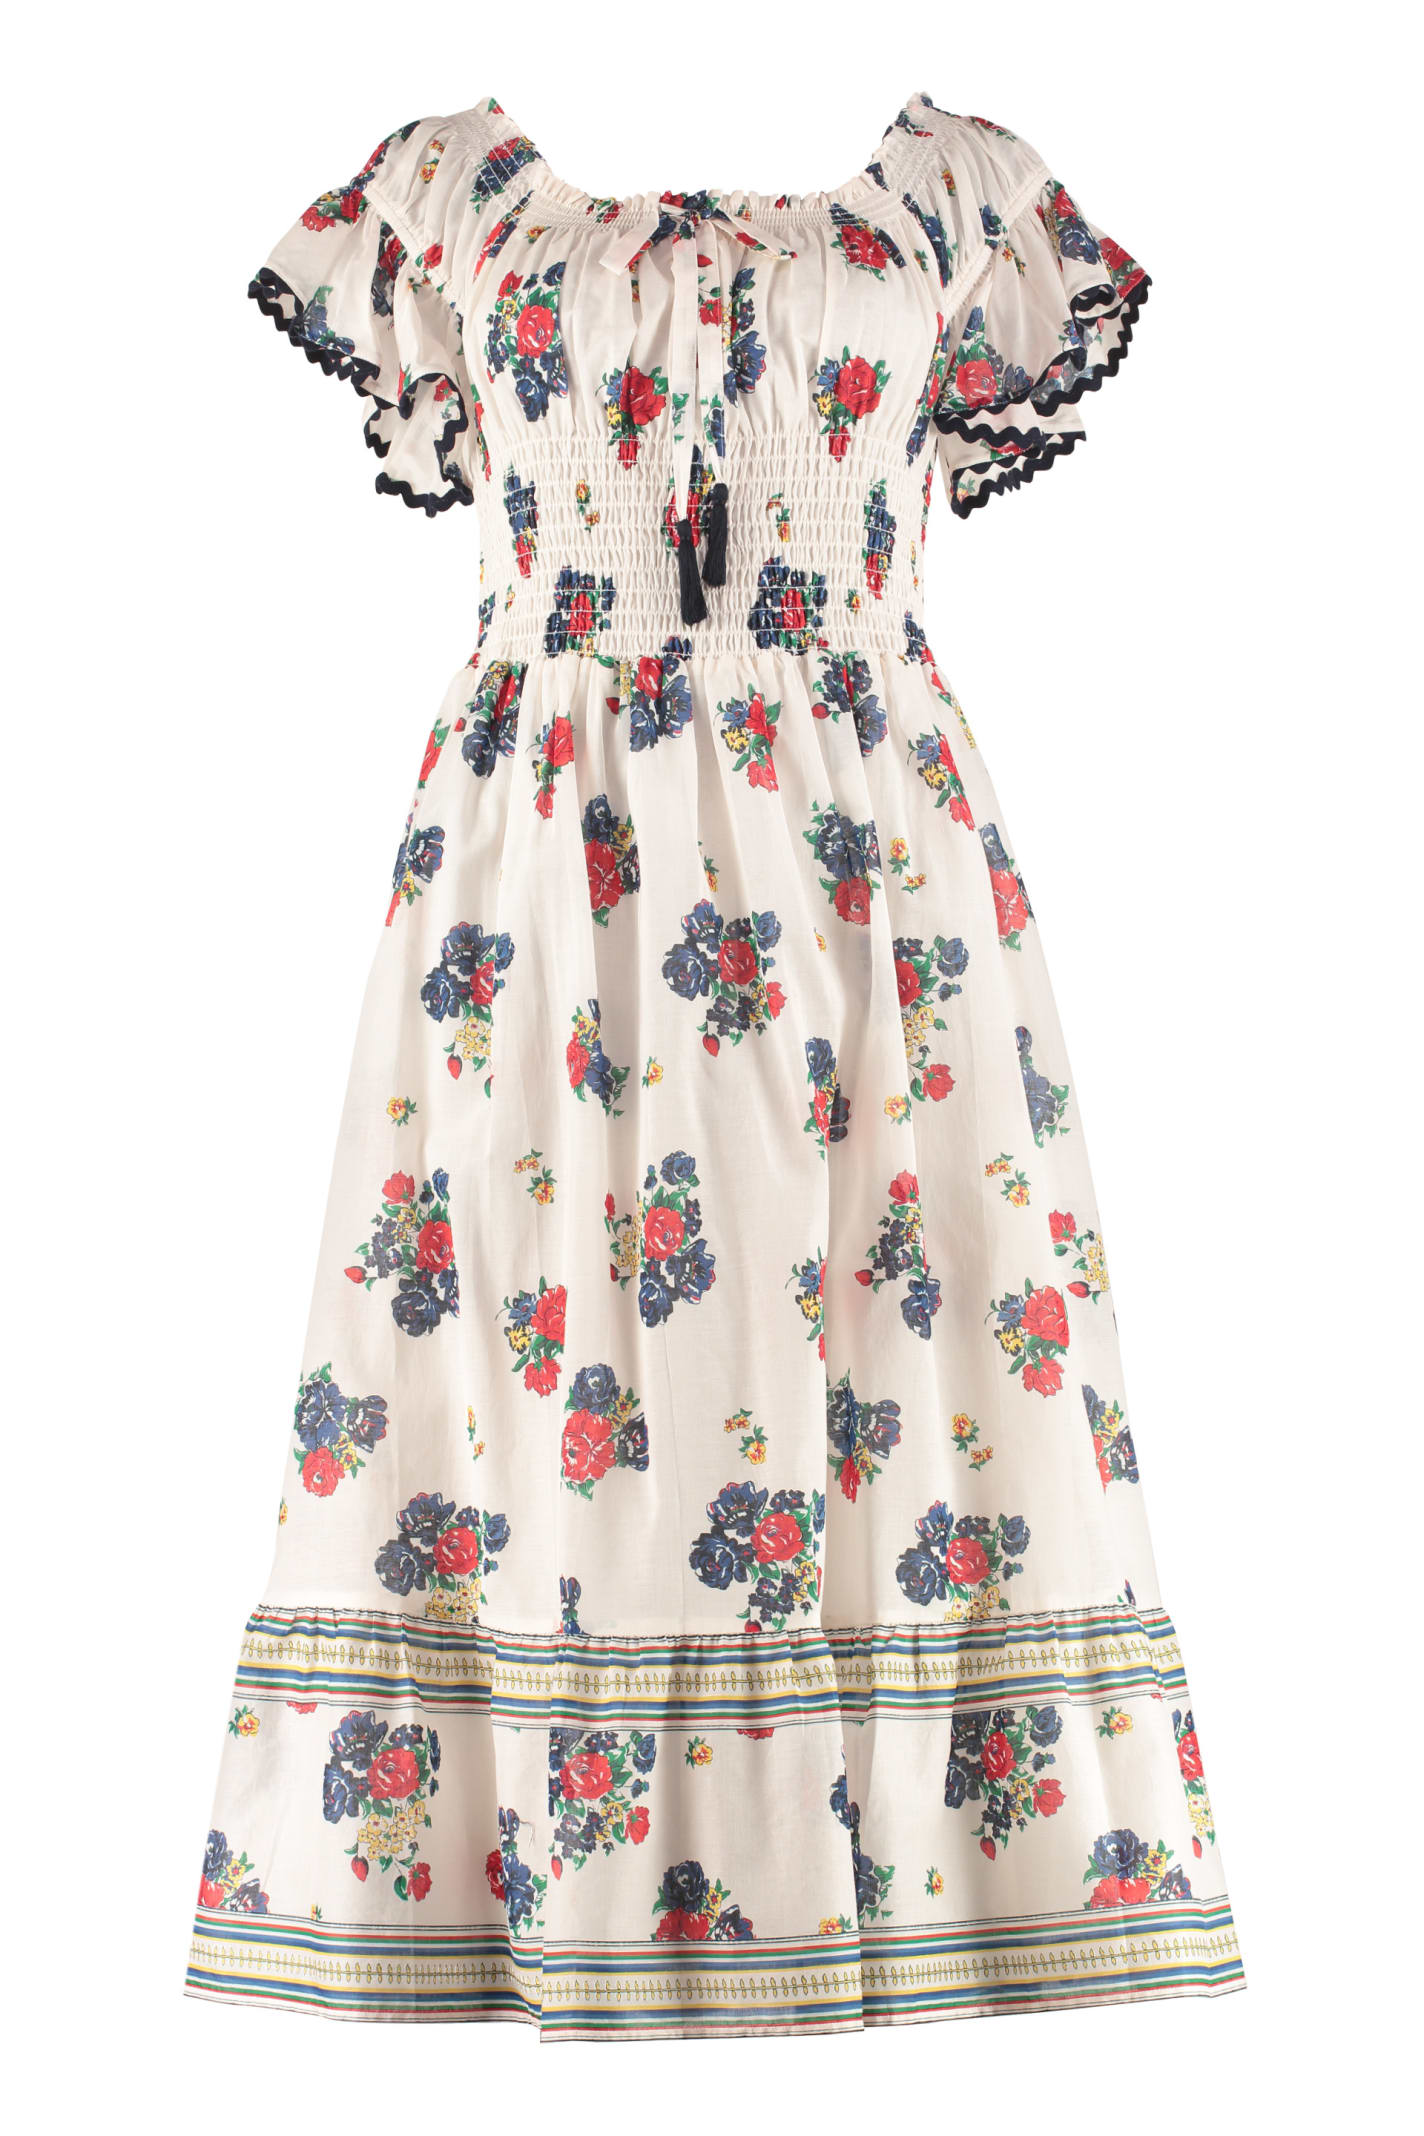 Buy Tory Burch Meadow Folly Patterned Cotton Dress online, shop Tory Burch with free shipping